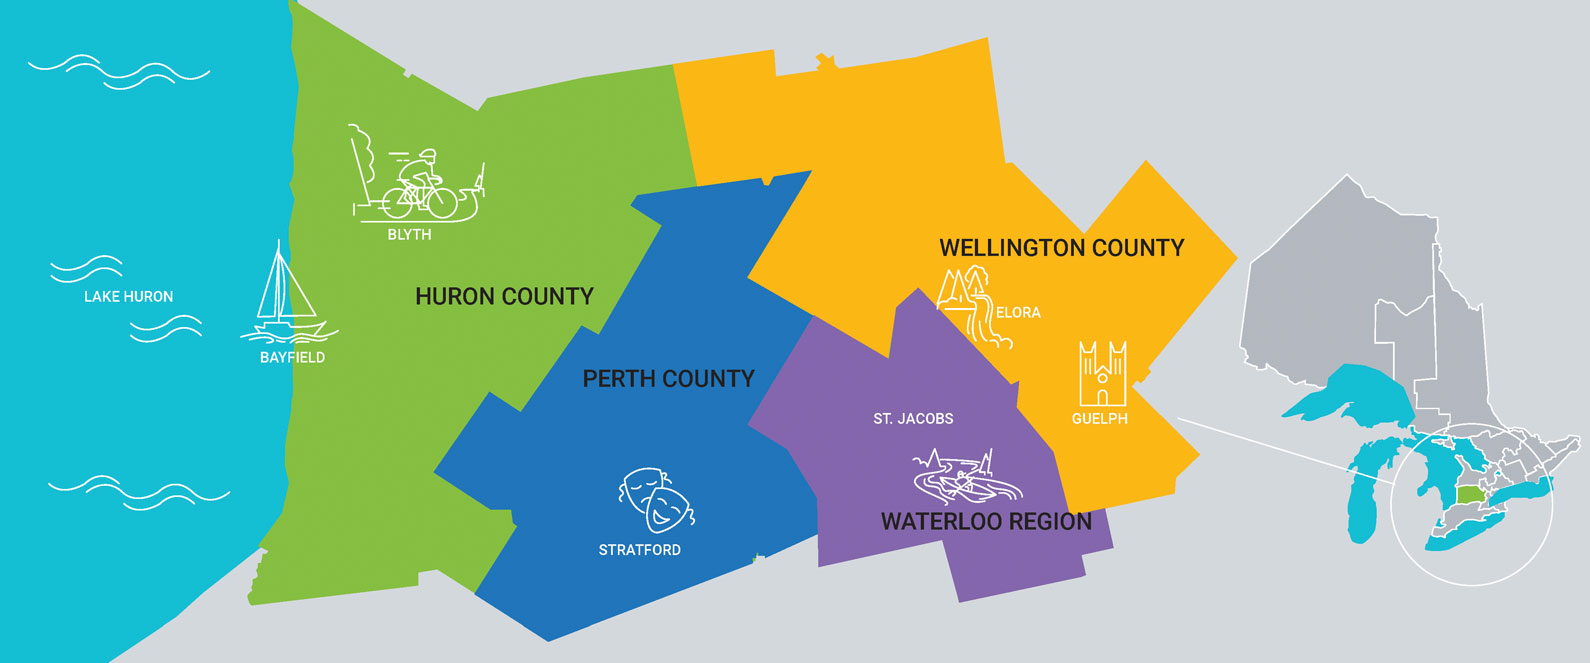 RTO4 Coverage Map Showing Huron County, Perth County, Waterloo Region and Wellington County